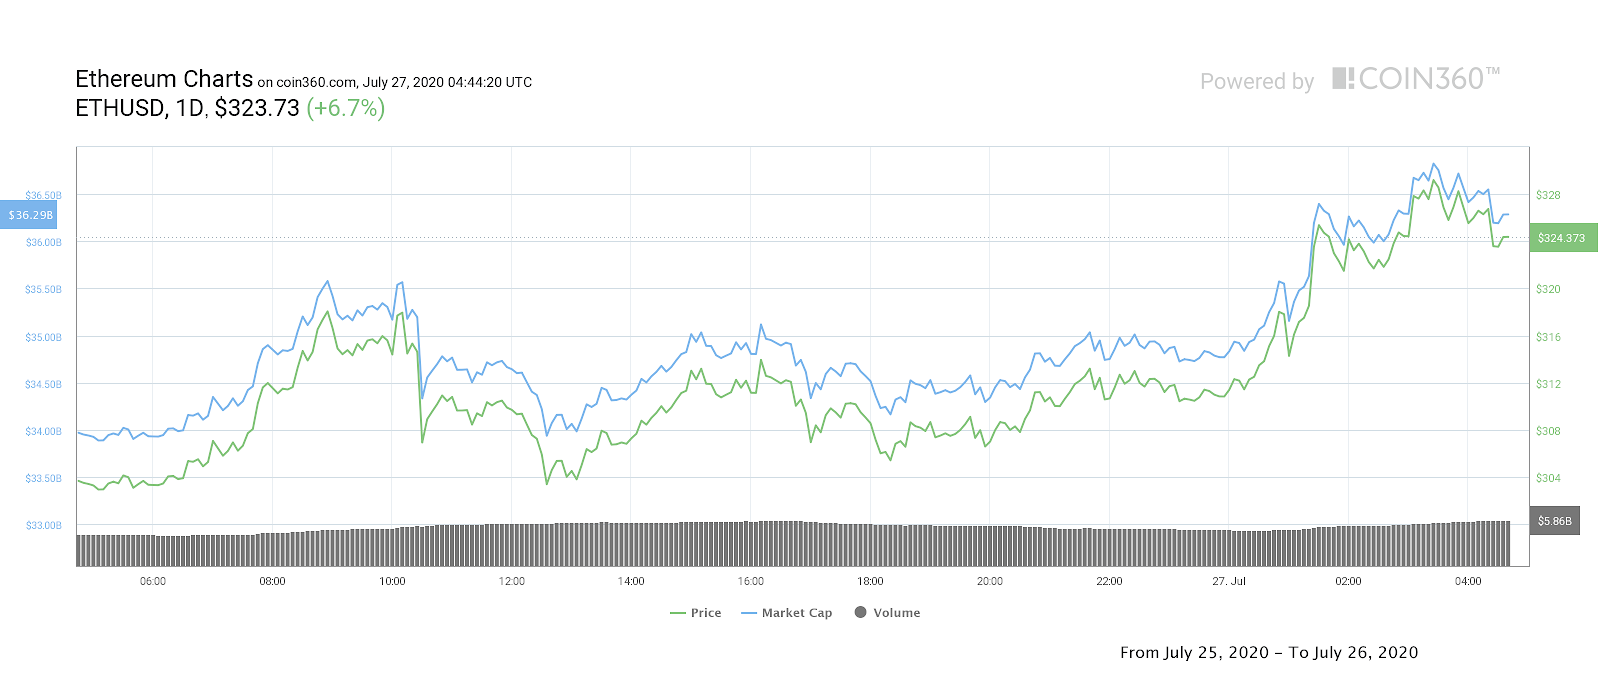 Ether daily price chart